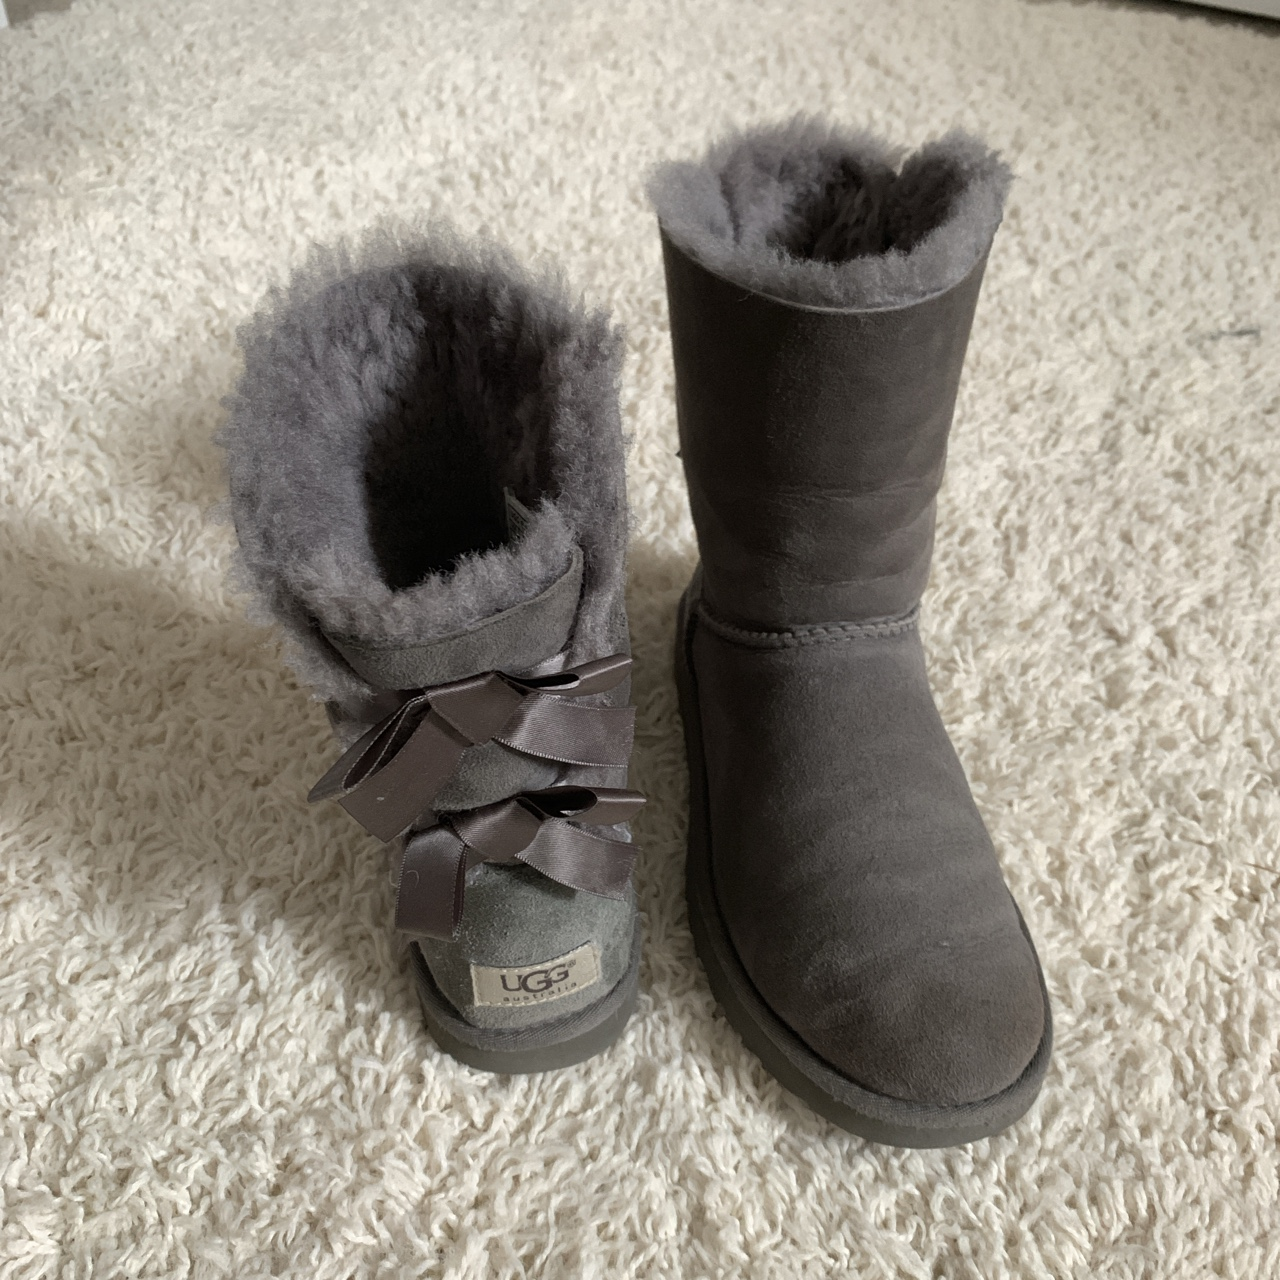 adb93d0b707 Grey Bailey Bow UGG Boots Women's Size 7 (Fits Size... - Depop